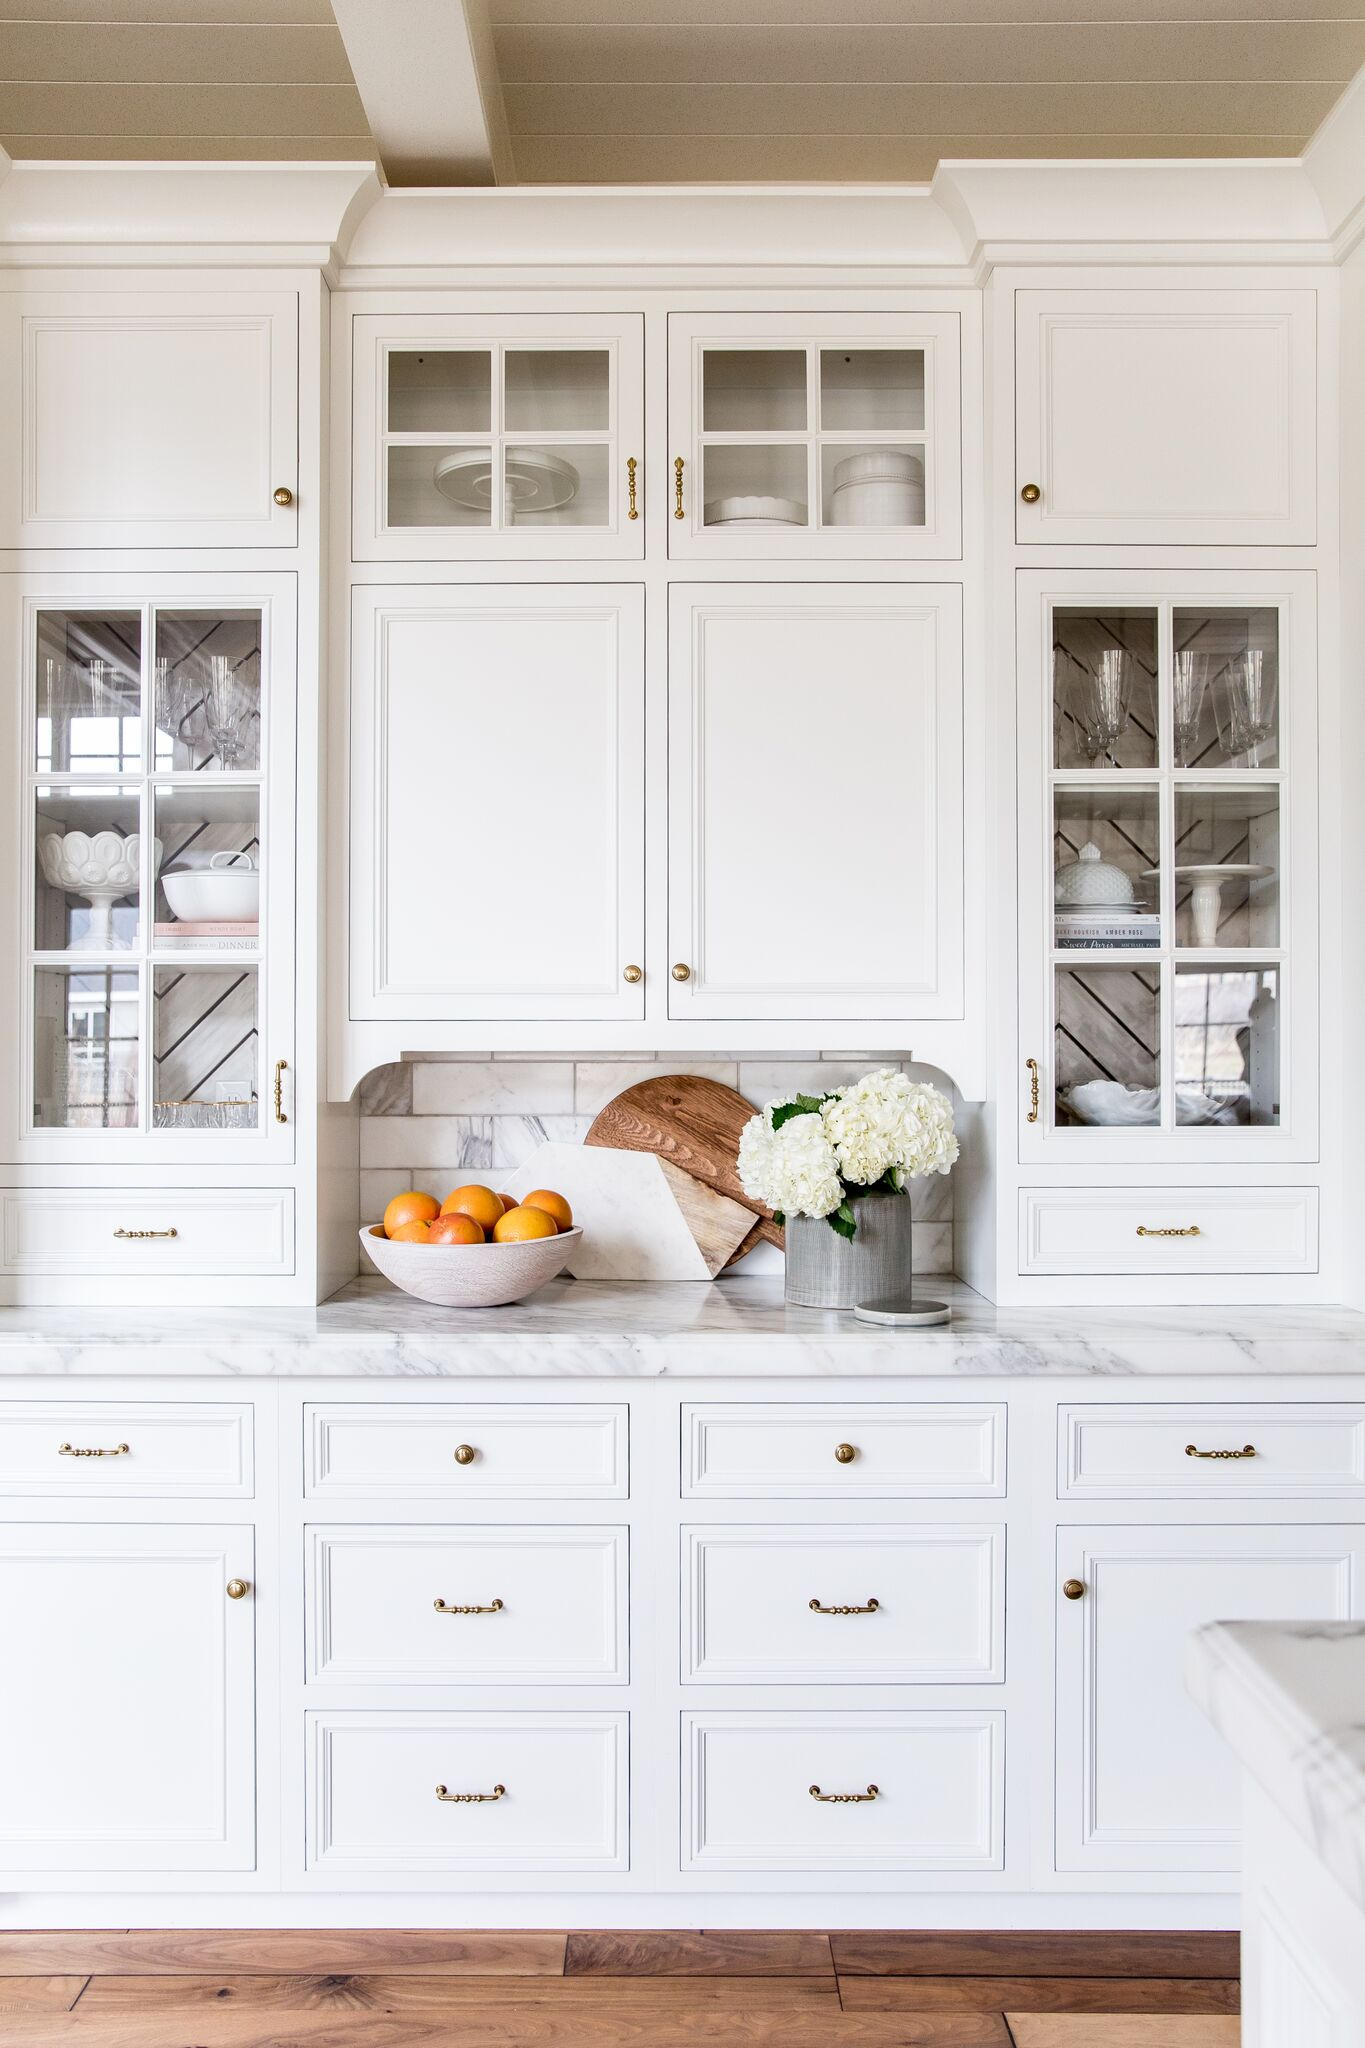 Kitchen Styling by Studio McGee